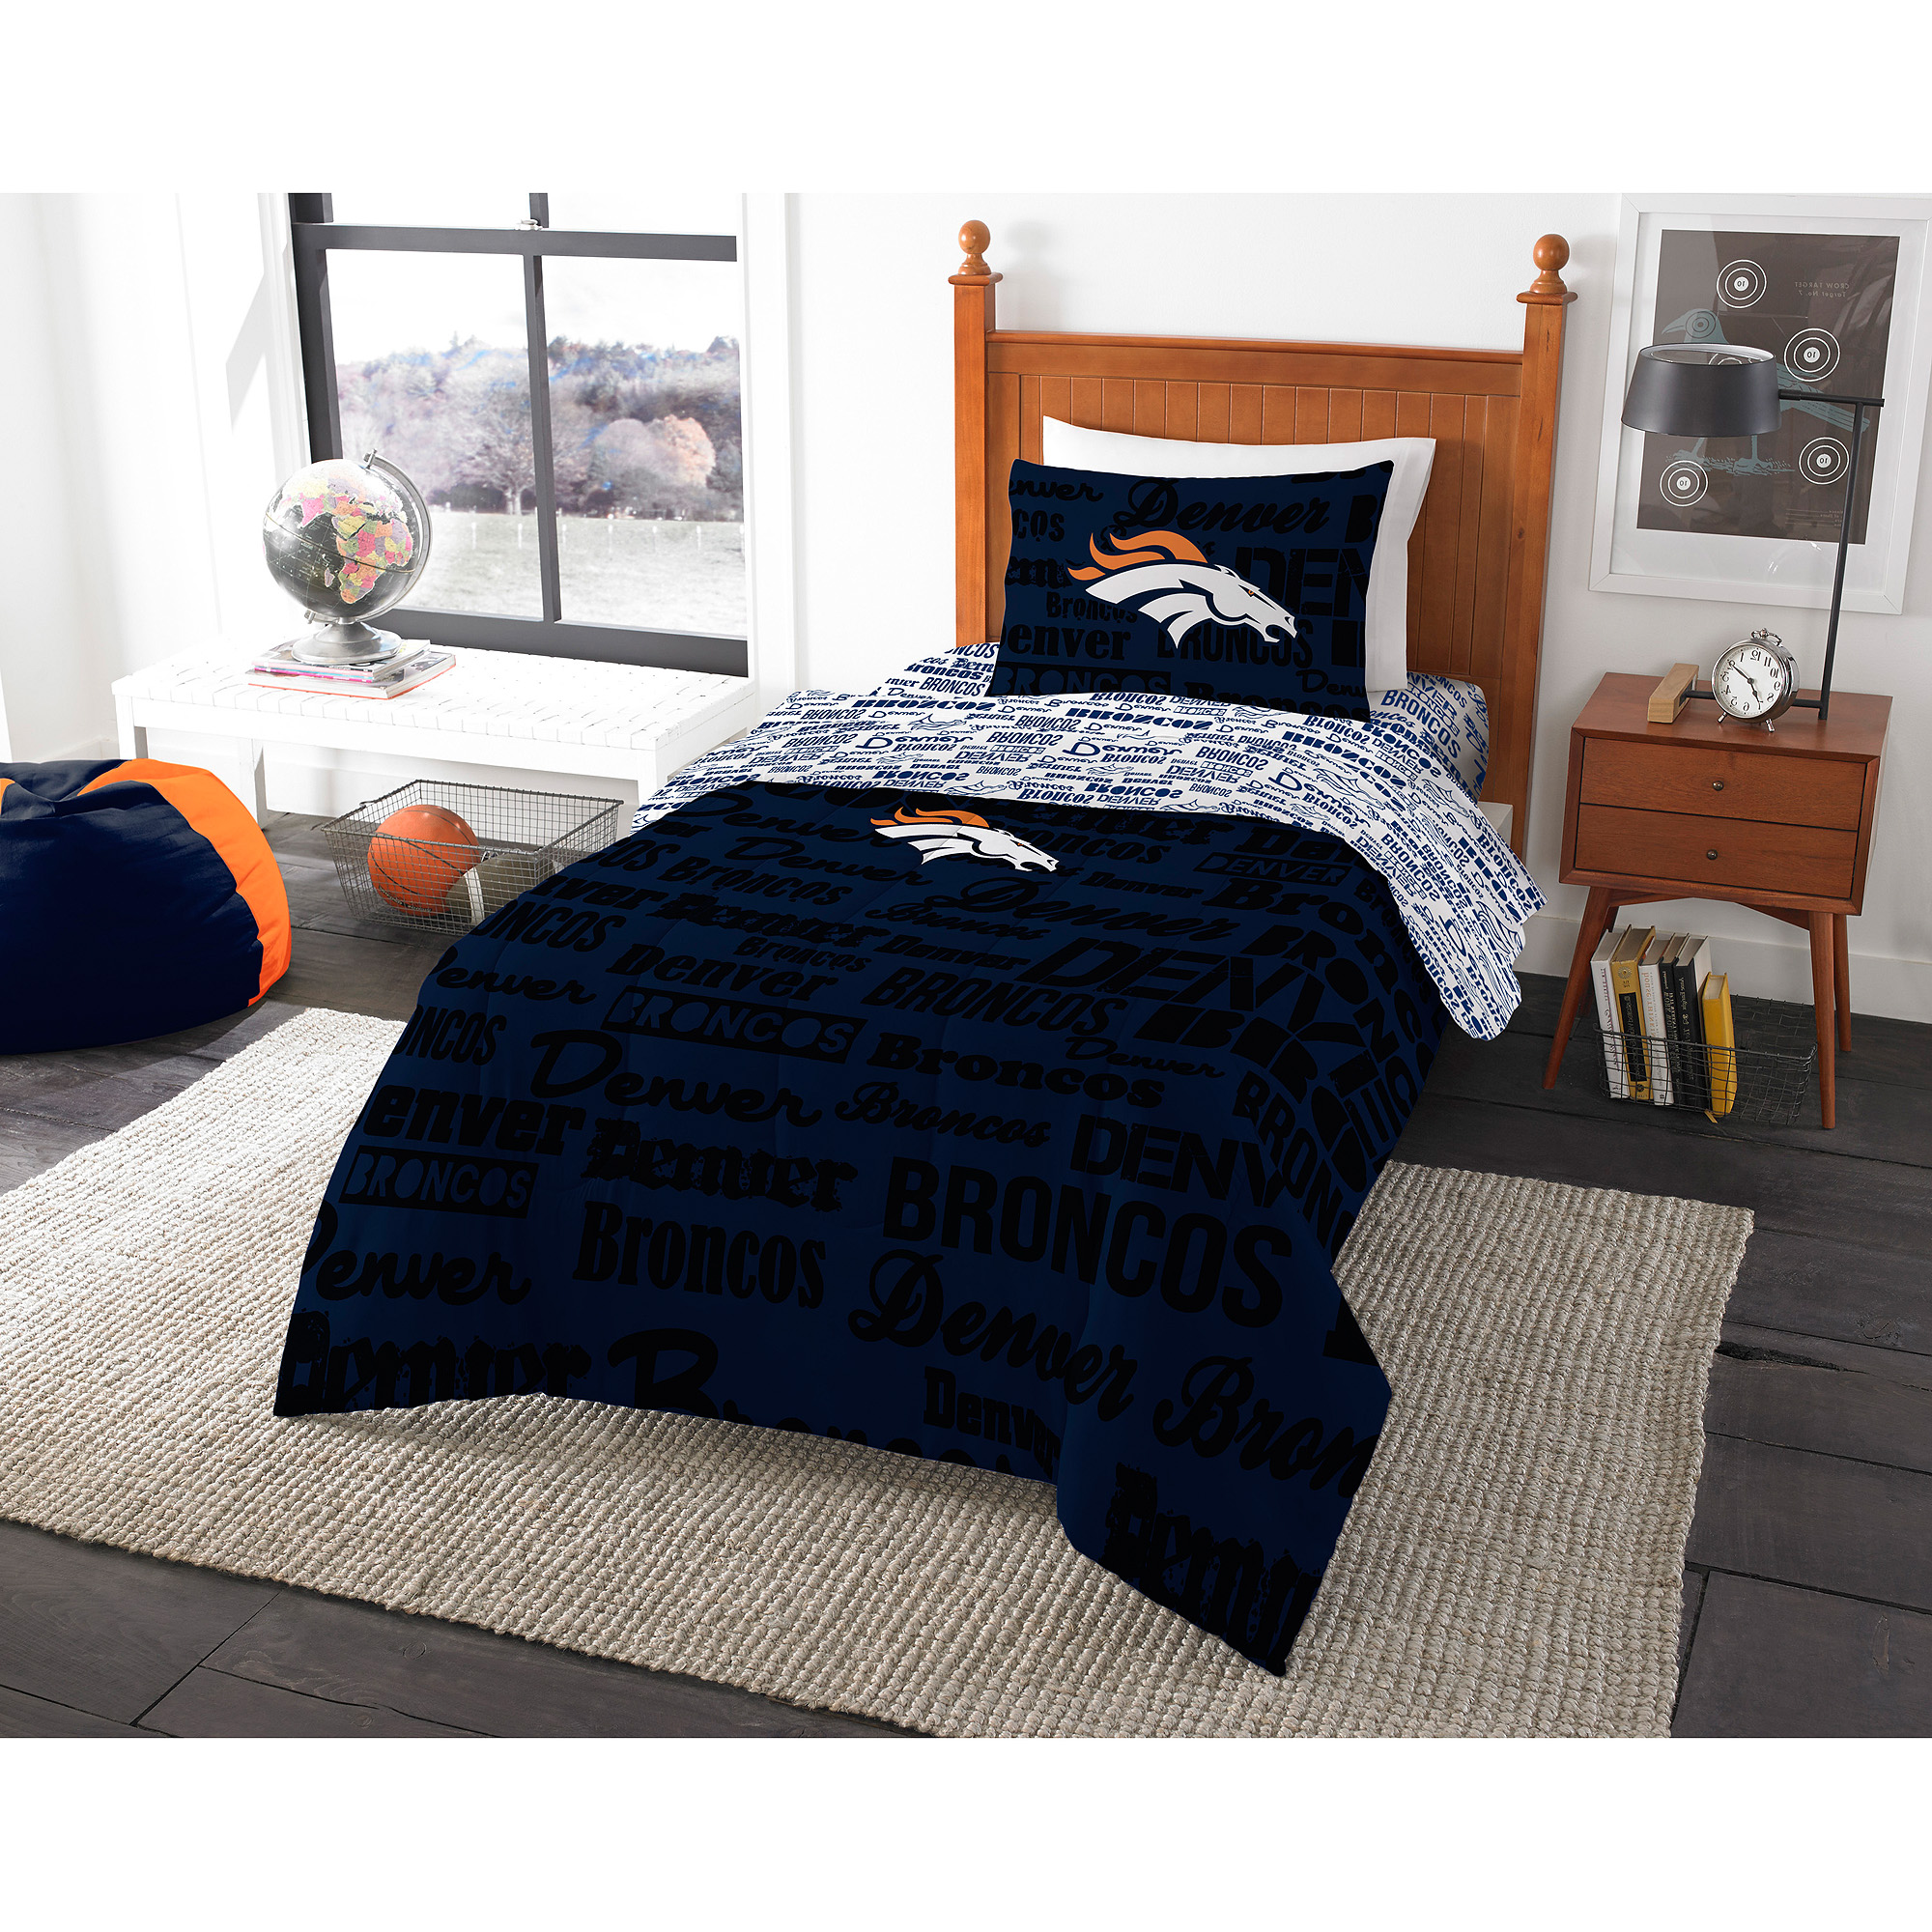 Superb NFL Denver Broncos Bed In A Bag Complete Bedding Set   Walmart.com